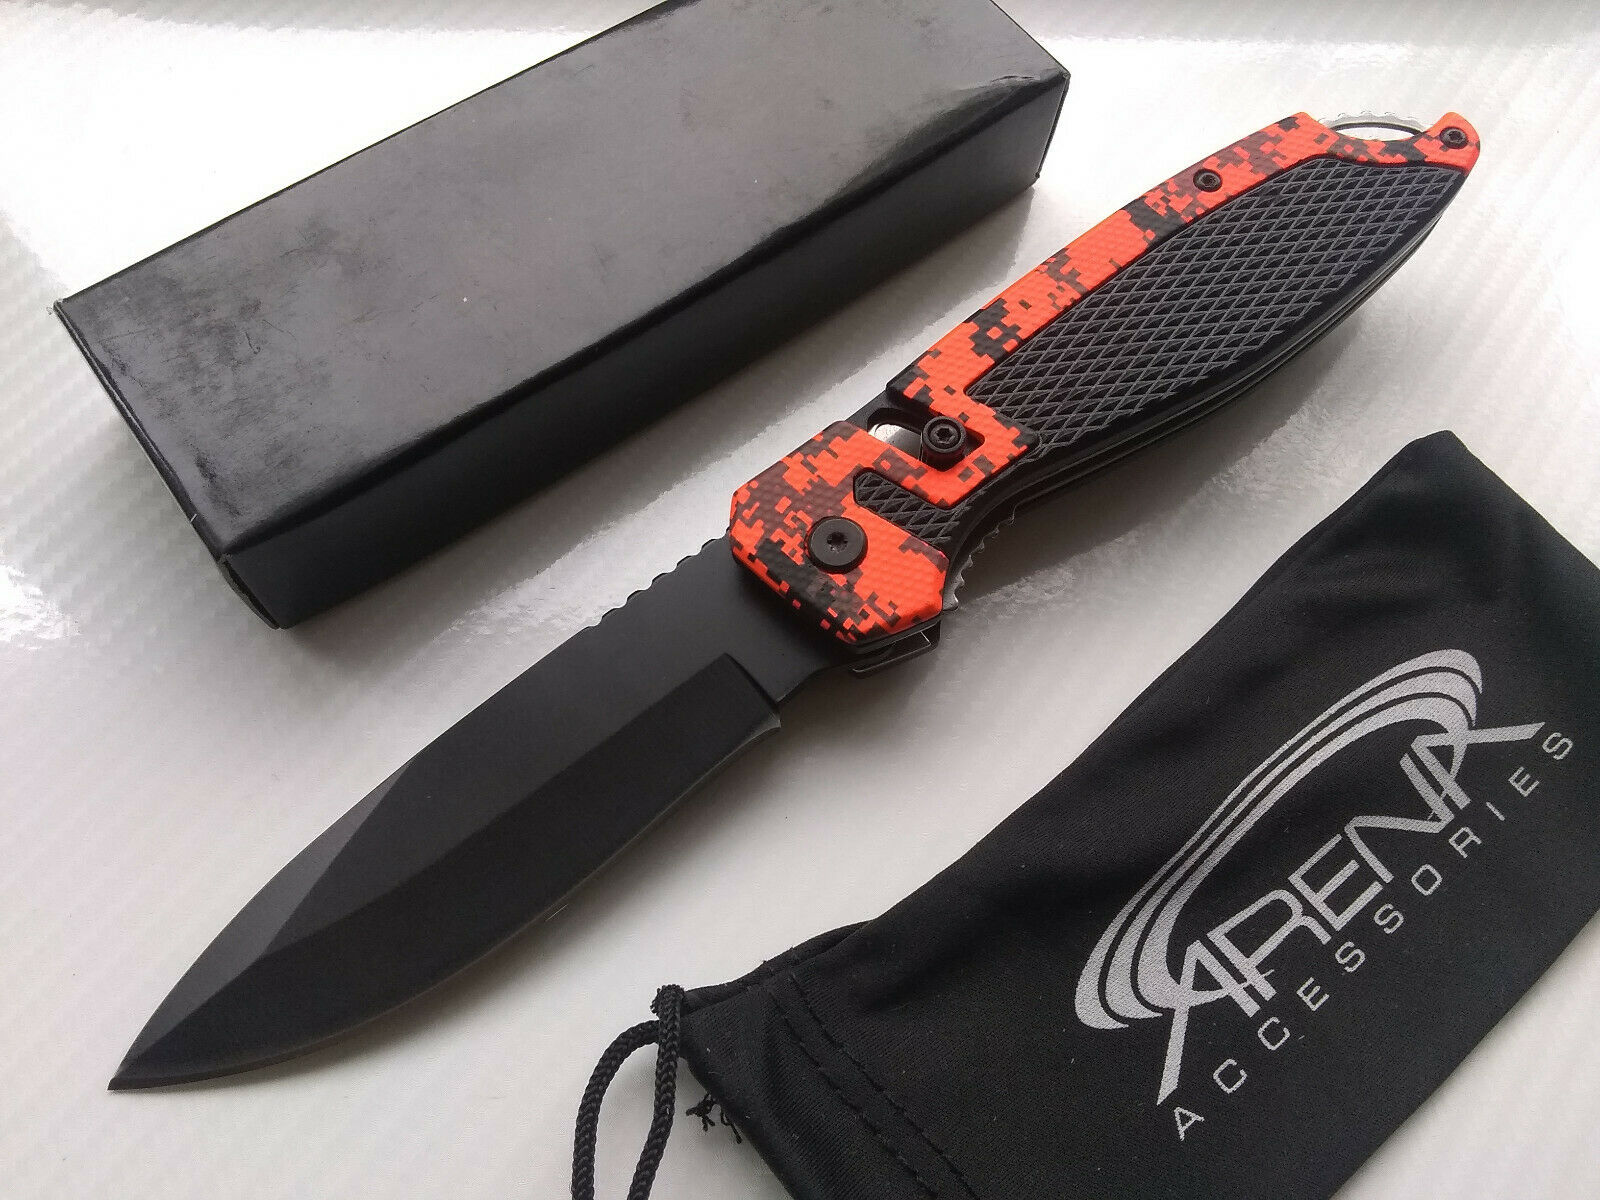 Unique Orange Digital Camo Slide Assist Pocket Knife Lightweight Spring Assisted Folder